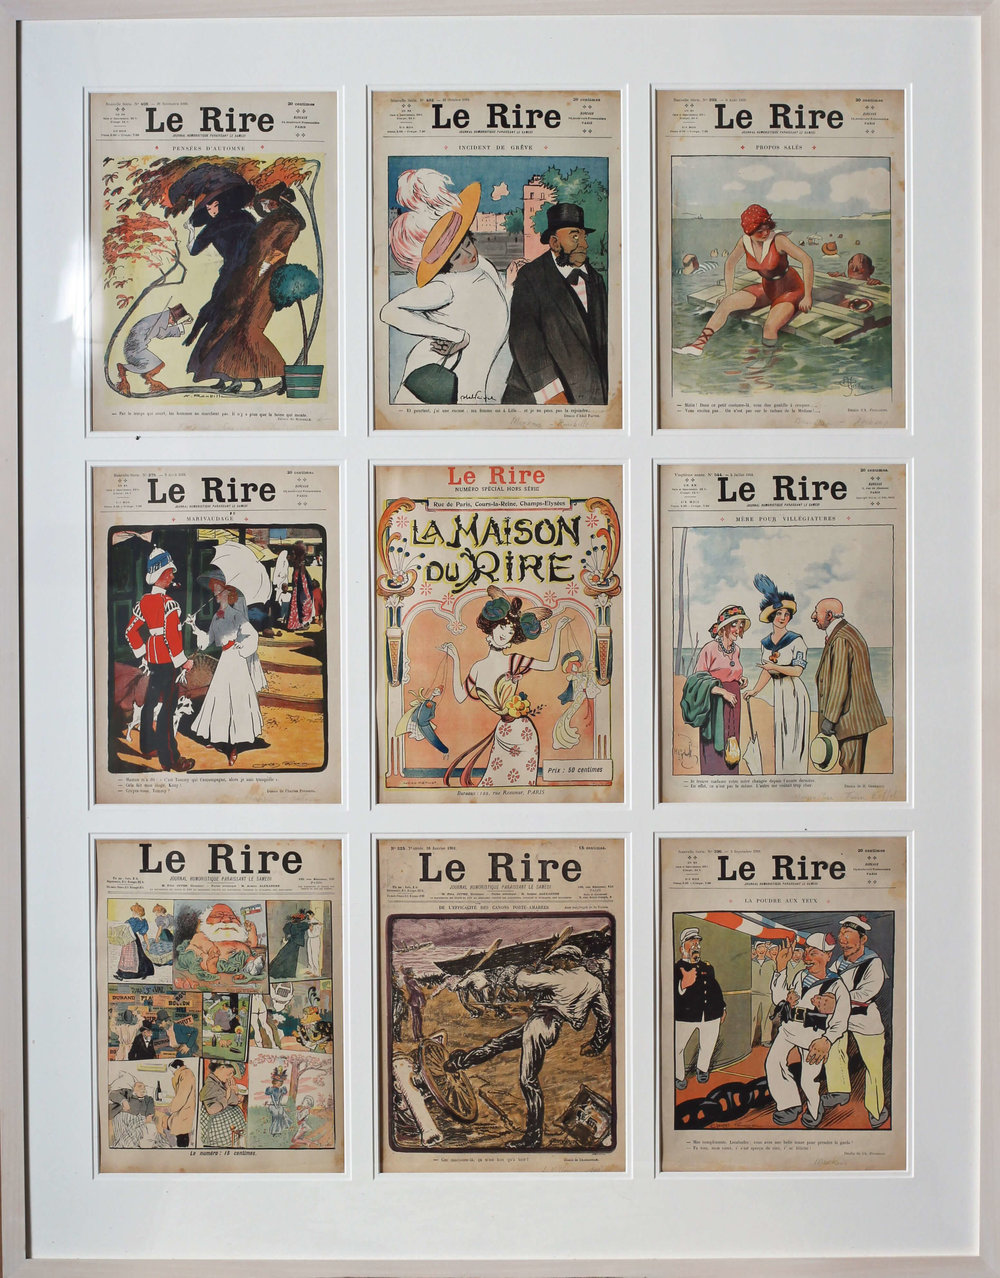 Set Of 9 Original Magazine Covers For The French Belle Epoque Publication 'Le Rire', Editions From Mainly 1910 Including an edition from 1901.  114.3 X 89.2cm. (including frame)  It would be extremely difficult to find another set like this with so many examples in such good condition.  There is a little bit of water staining, slight dirt, overall the colours are extremely strong.  The paper remains in a slightly faded but authentic state.   Price: £2000